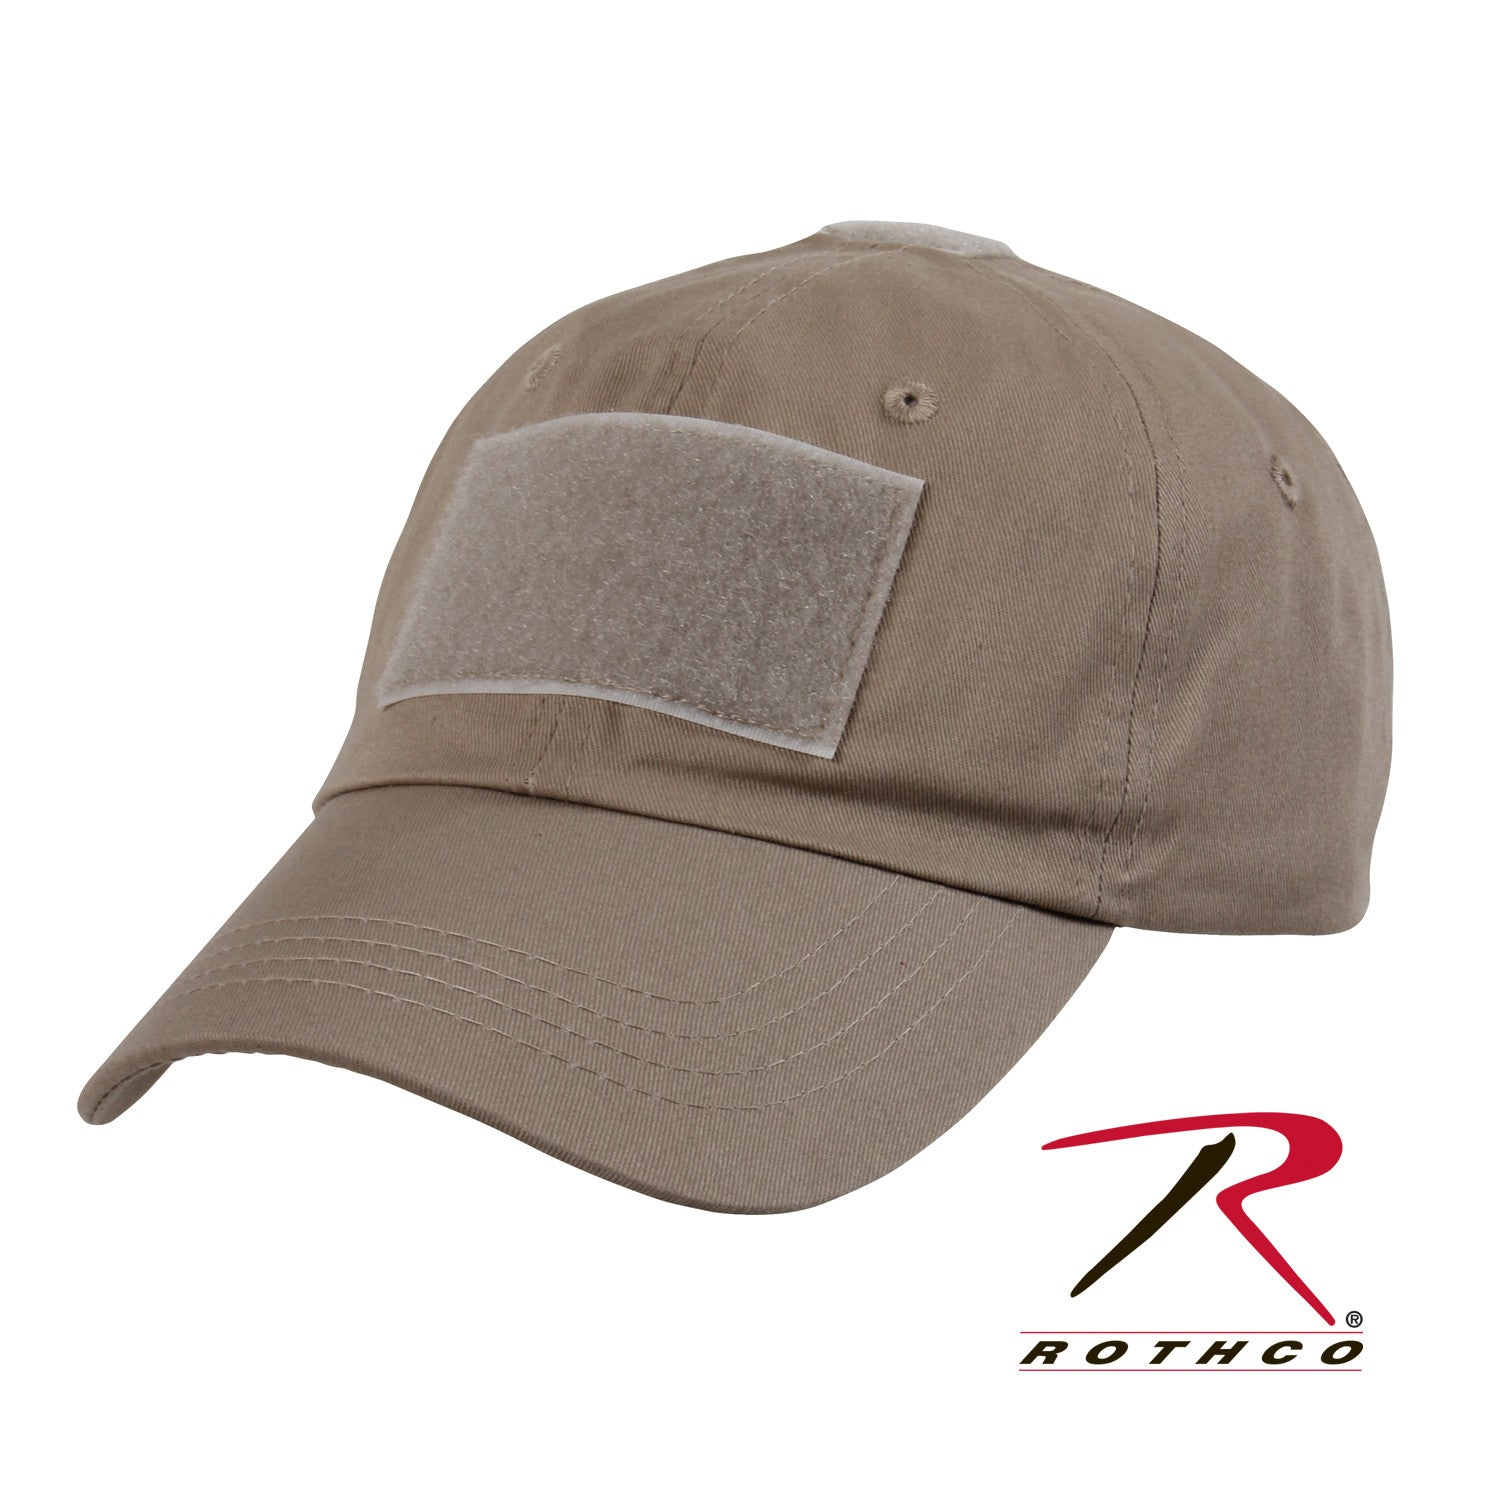 Rothco Tactical Operator Cap - GI Jeffs